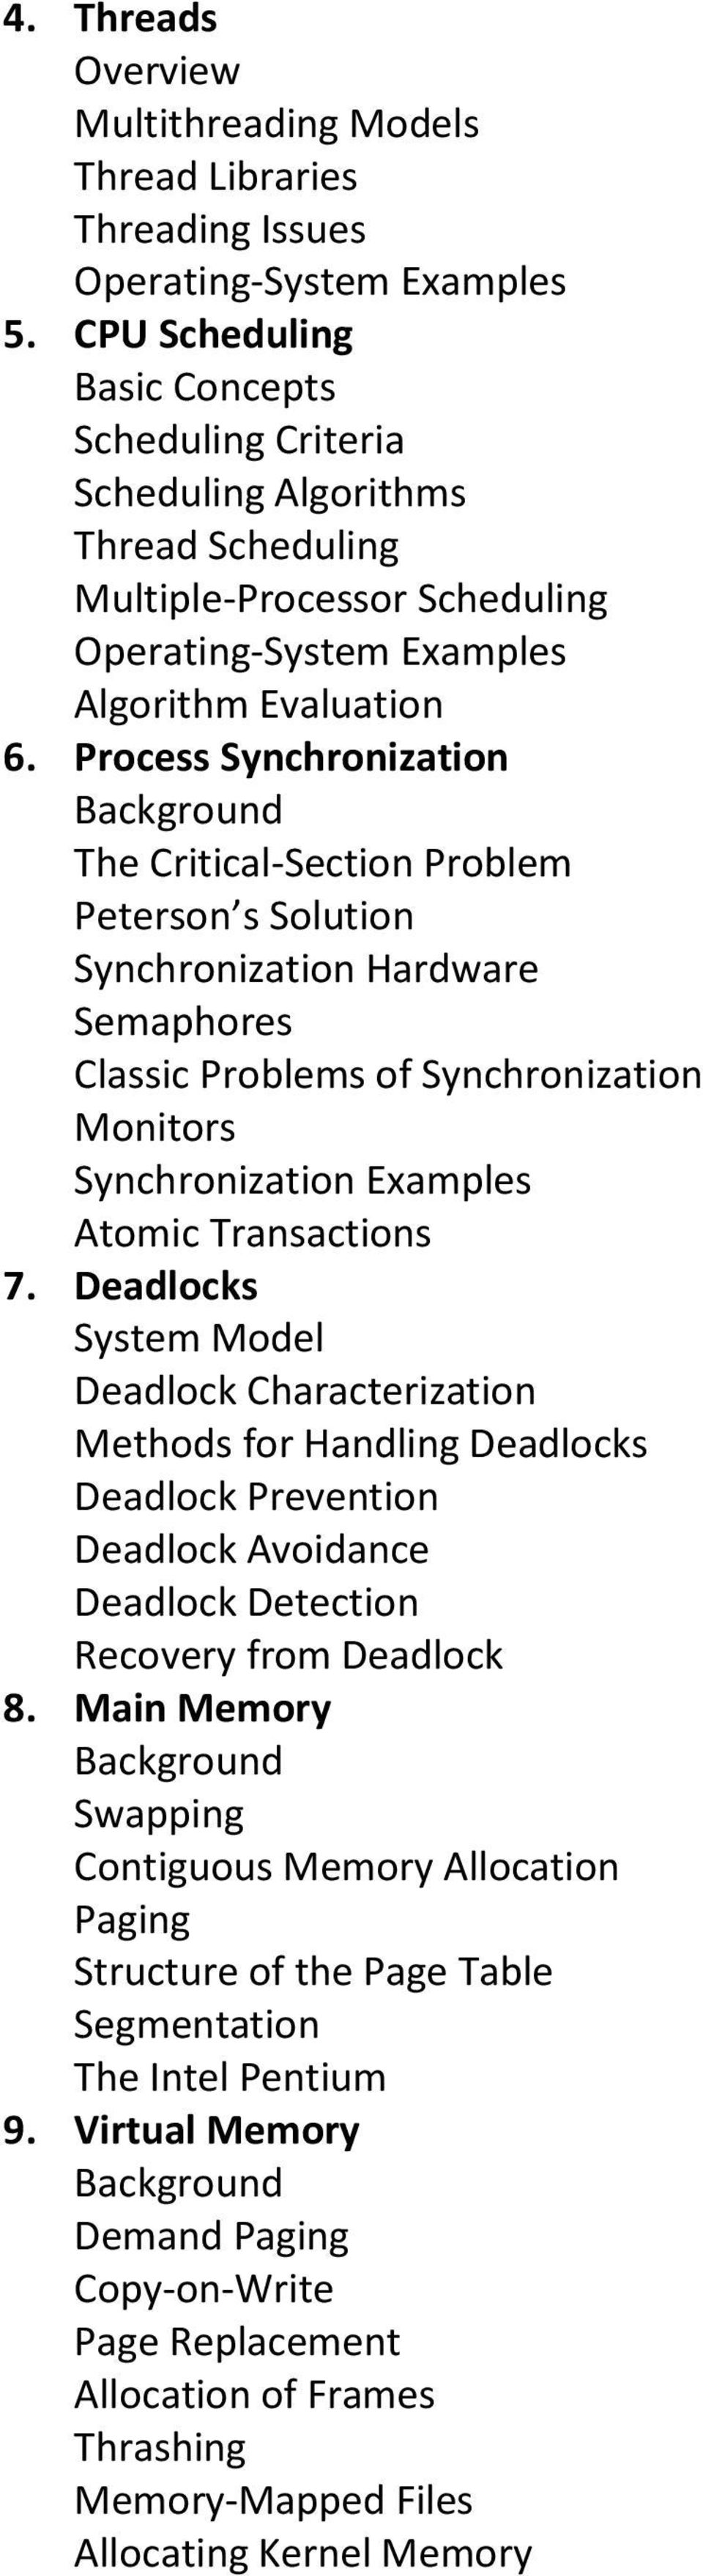 Process Synchronization The Critical-Section Problem Peterson s Solution Synchronization Hardware Semaphores Classic Problems of Synchronization Monitors Synchronization Examples Atomic Transactions